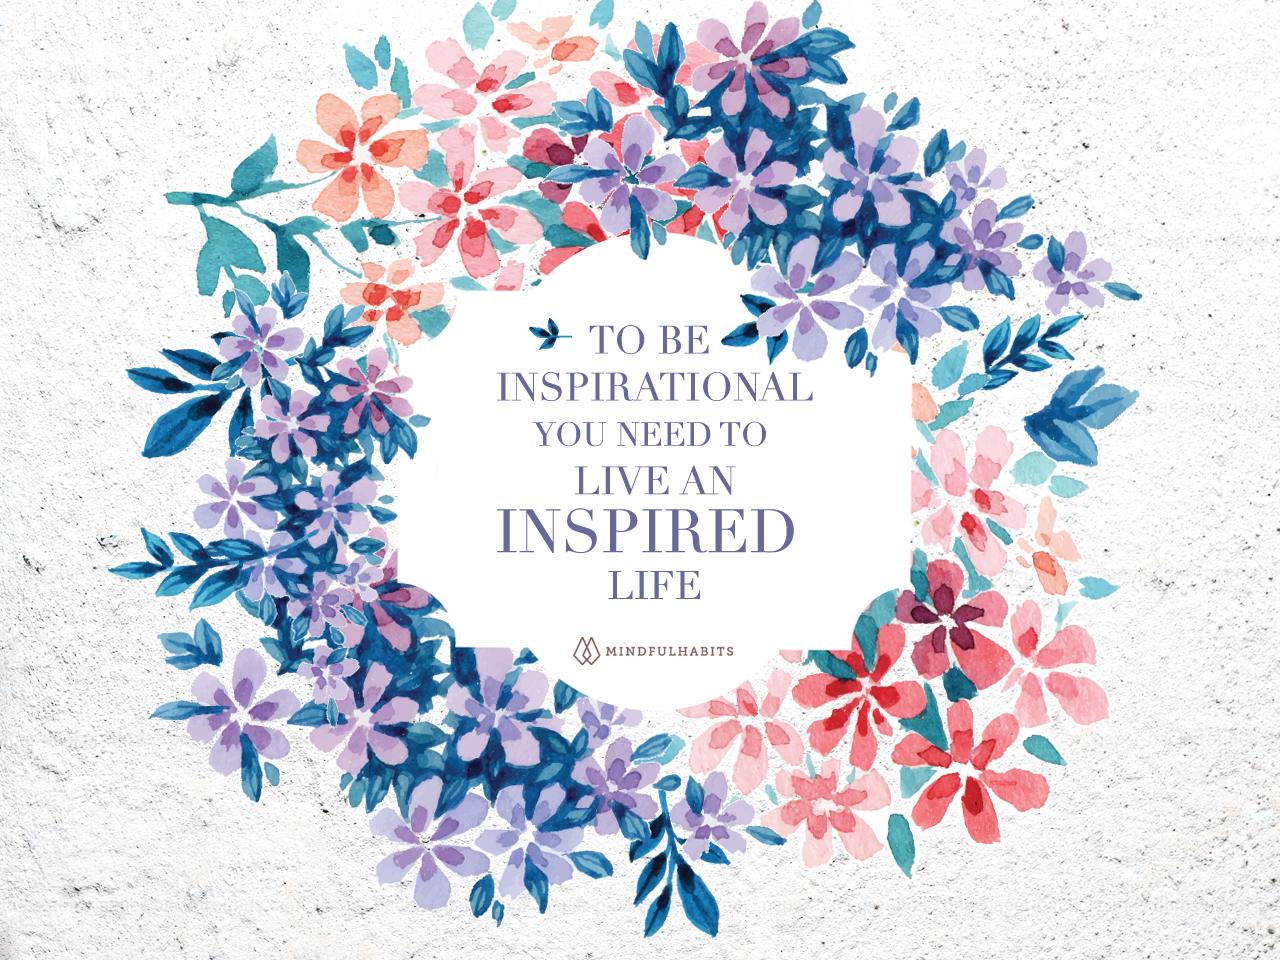 To be inspirational you need to live an inspired life